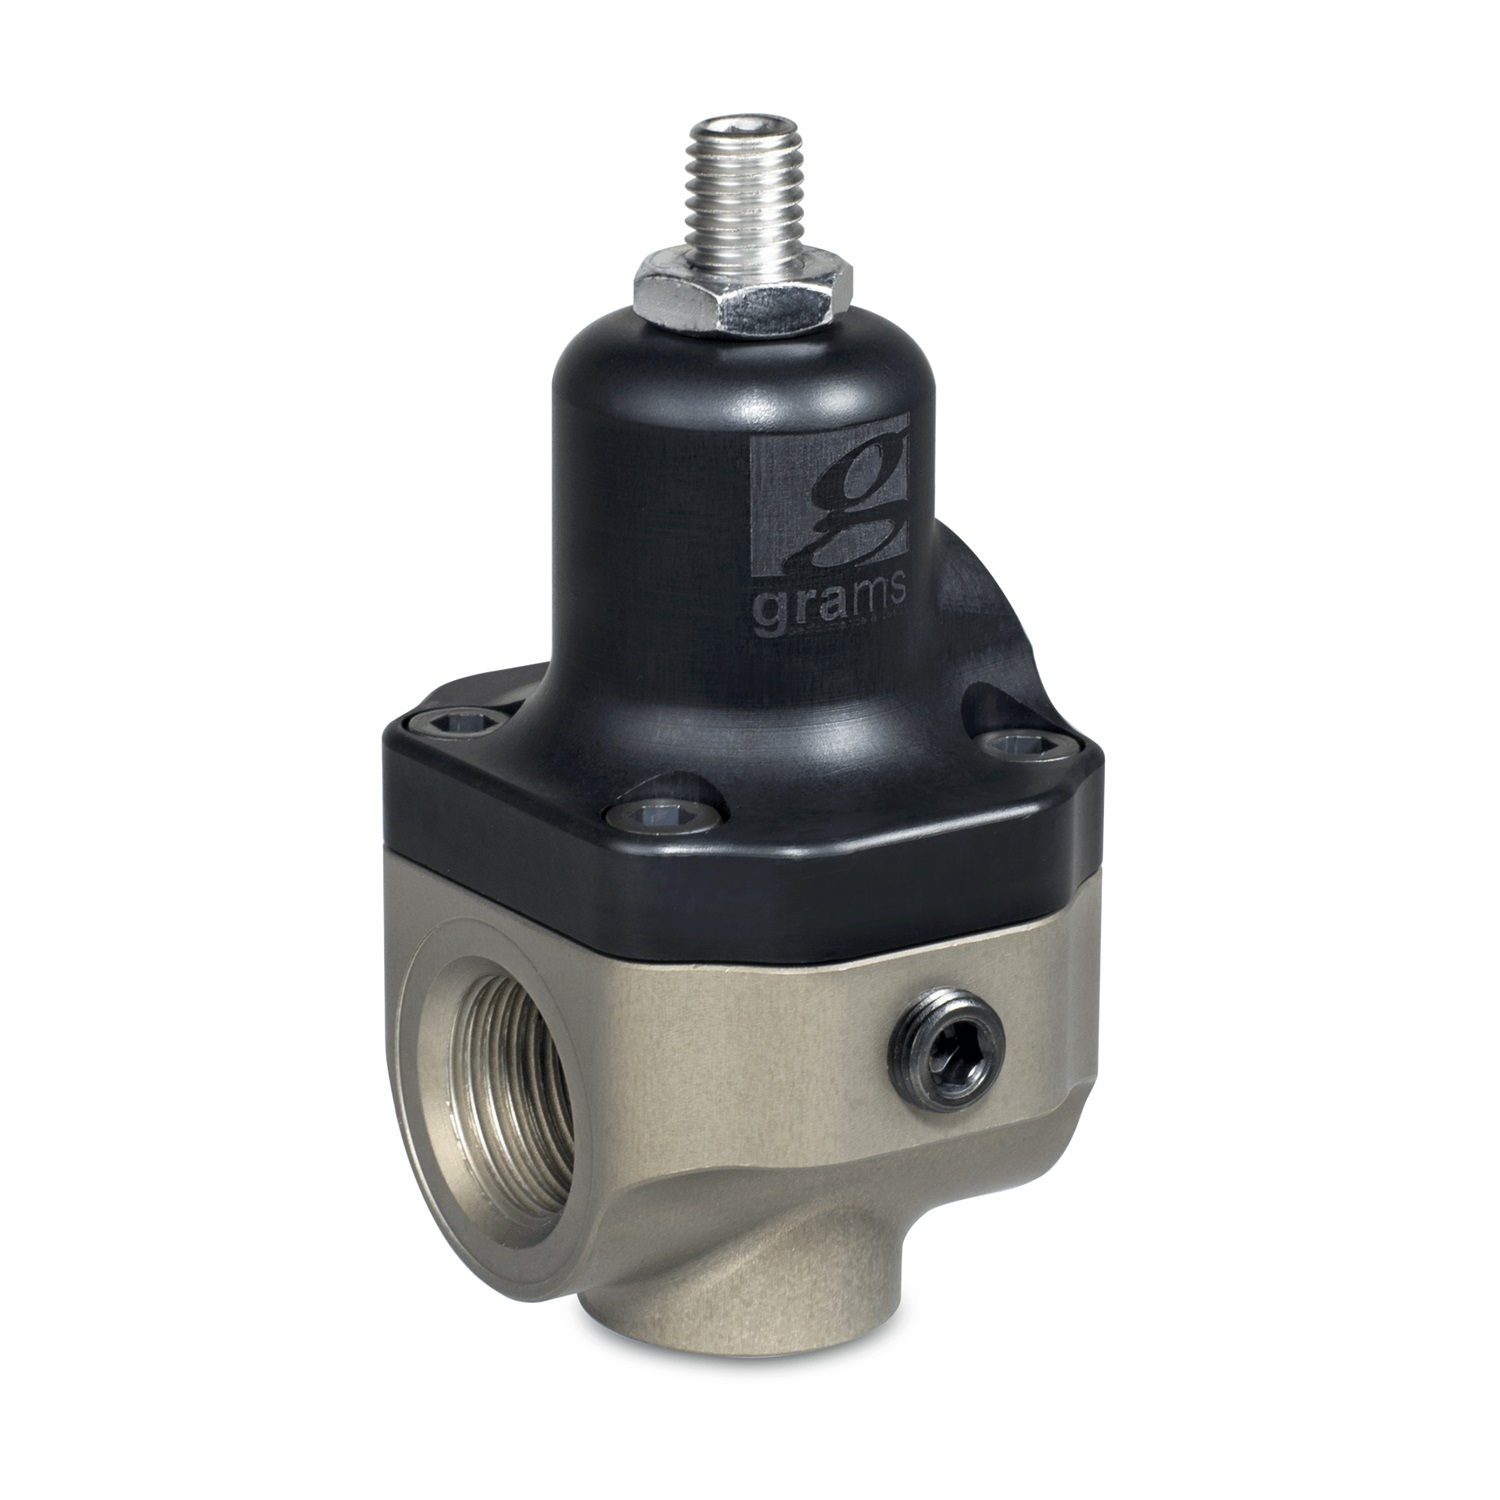 Grams Performance and Design G60-99-0000 Fuel Pressure Regulator